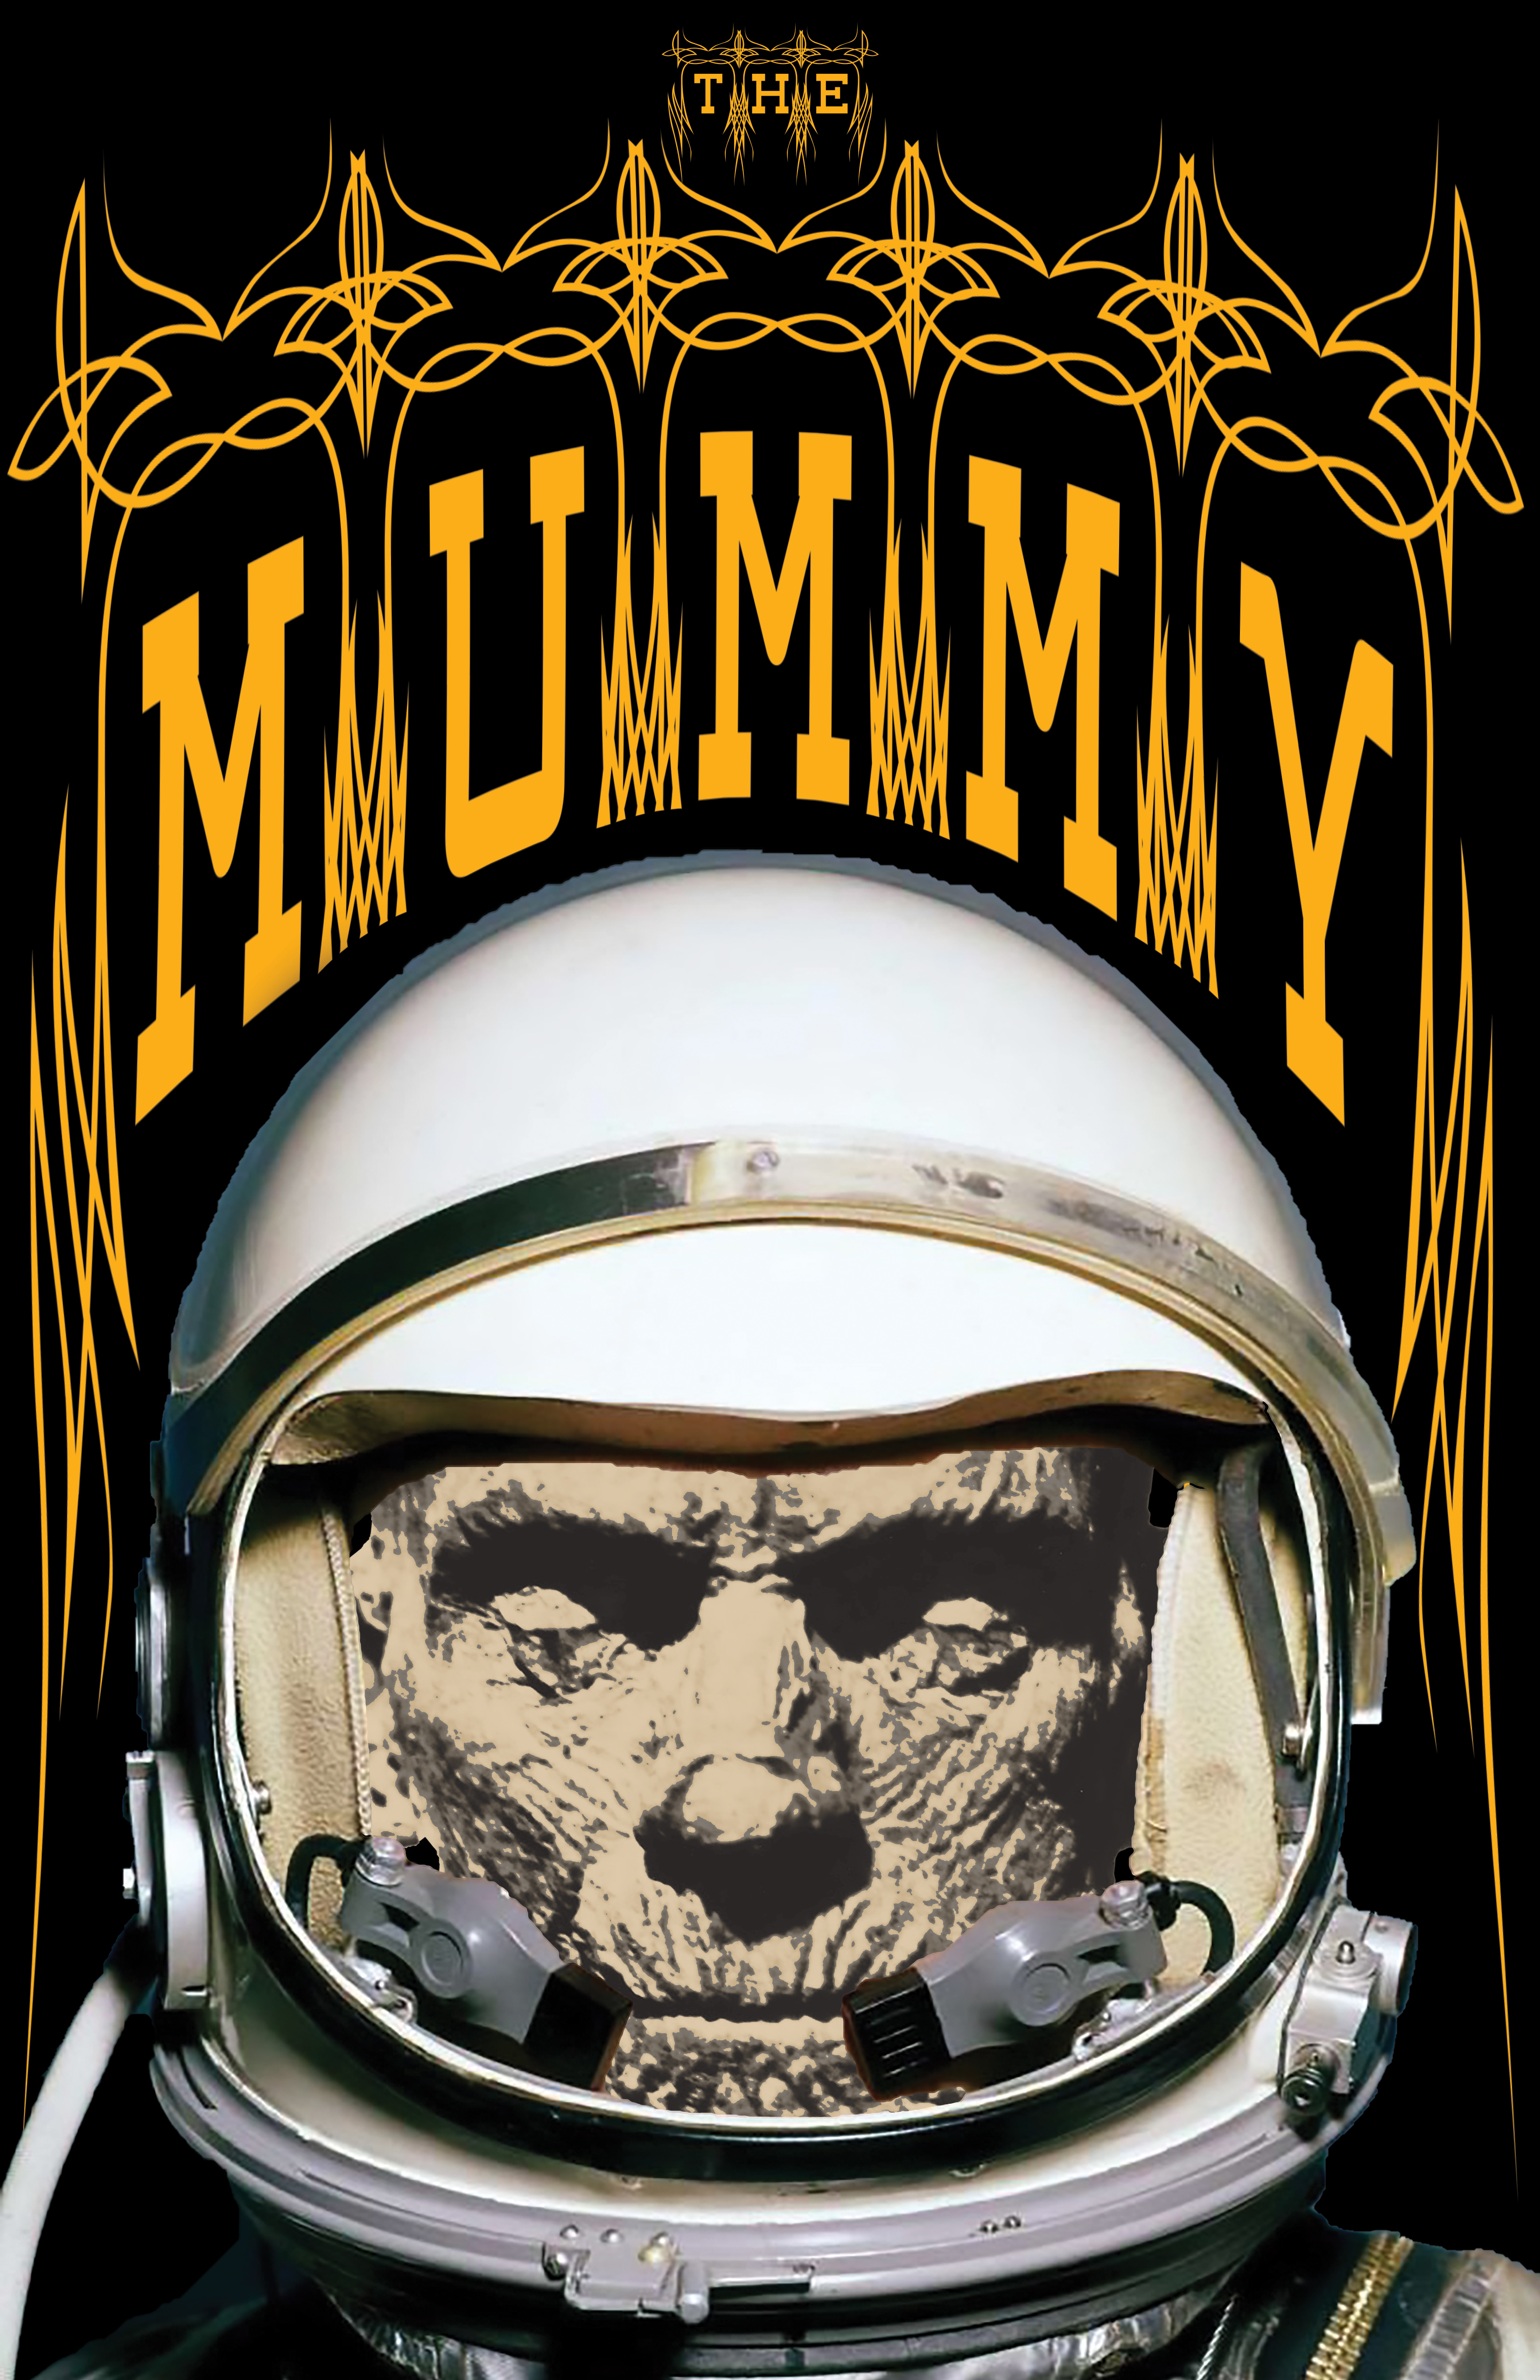 Universal Astro Zombies The Mummy